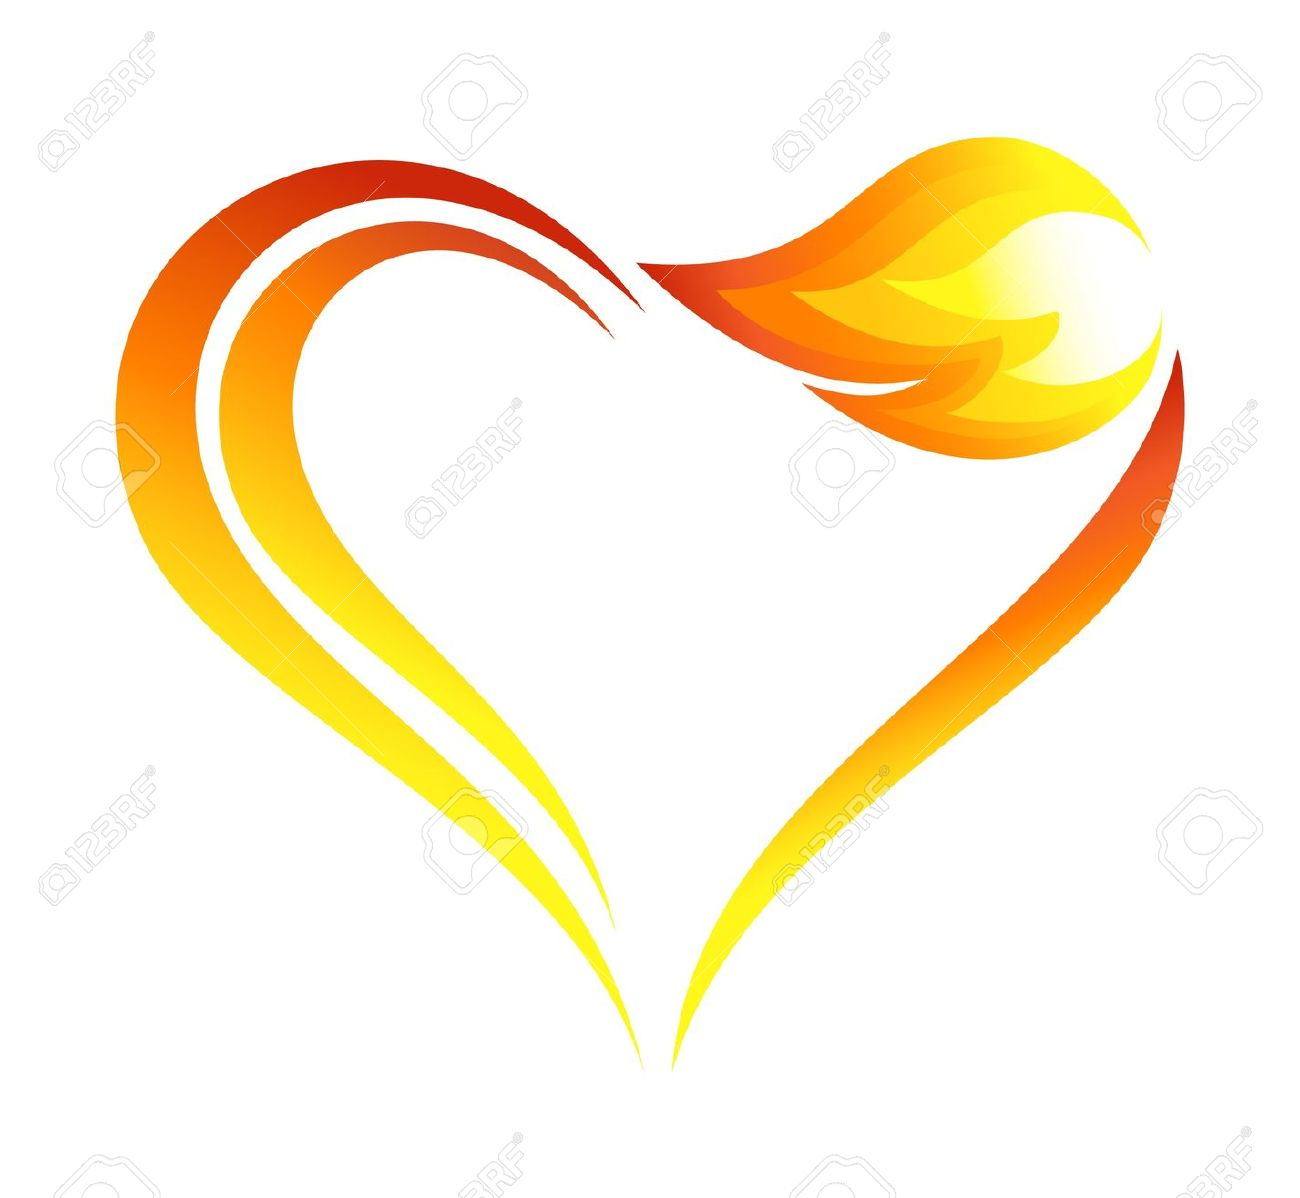 Heart with flames free download best heart with flames on 1300x1198 flaming heart clipart buycottarizona